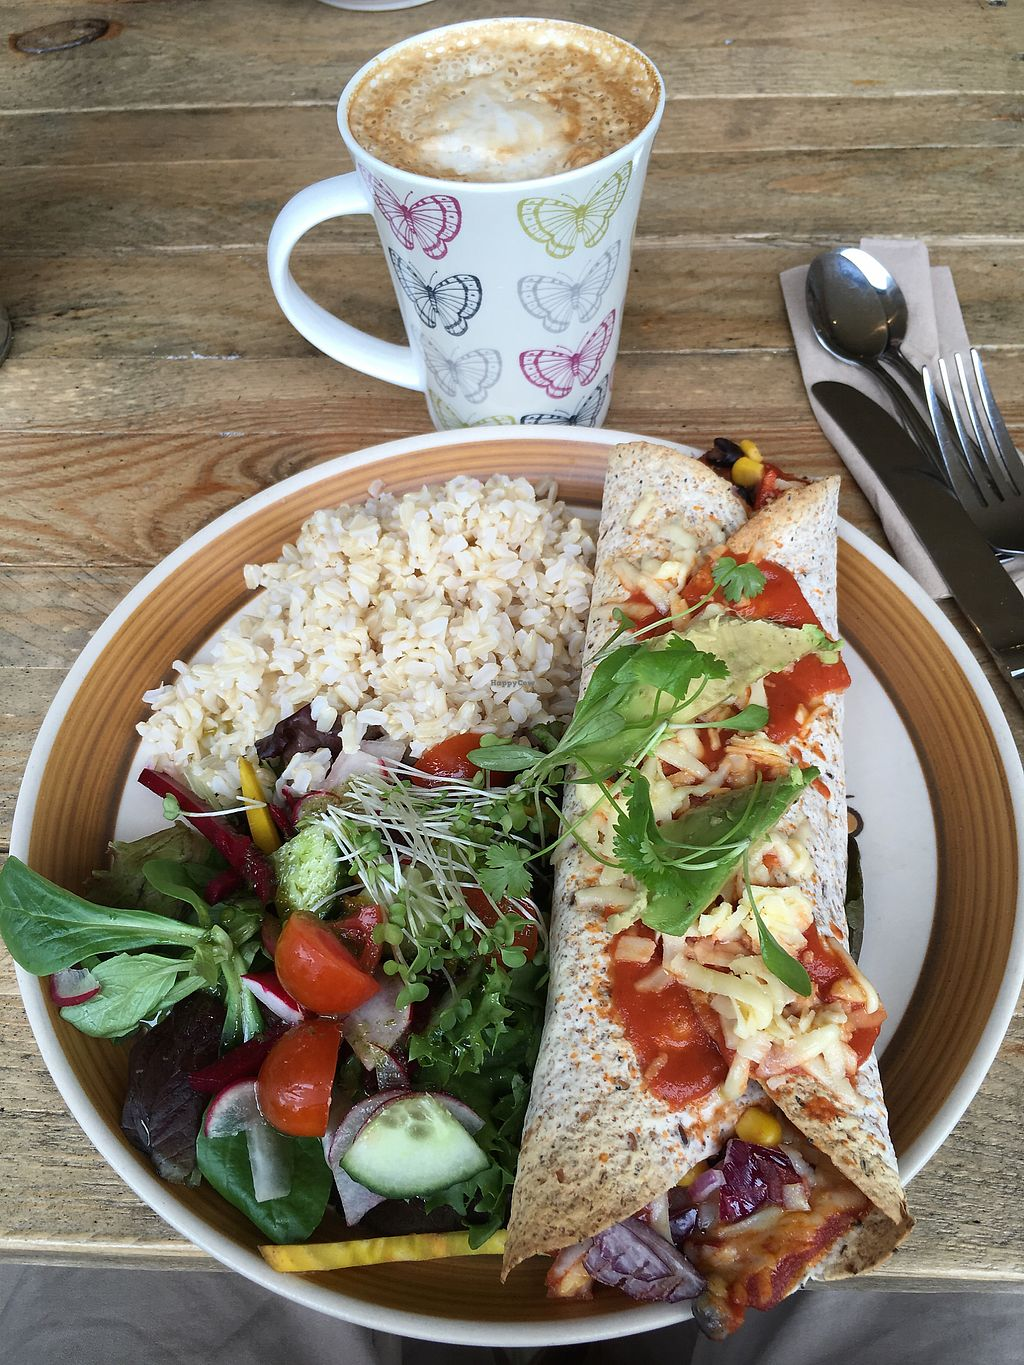 """Photo of Mad Cucumber - Vegan Lounge  by <a href=""""/members/profile/redshift86"""">redshift86</a> <br/>Enchilada and soya latte <br/> August 1, 2017  - <a href='/contact/abuse/image/39613/287591'>Report</a>"""